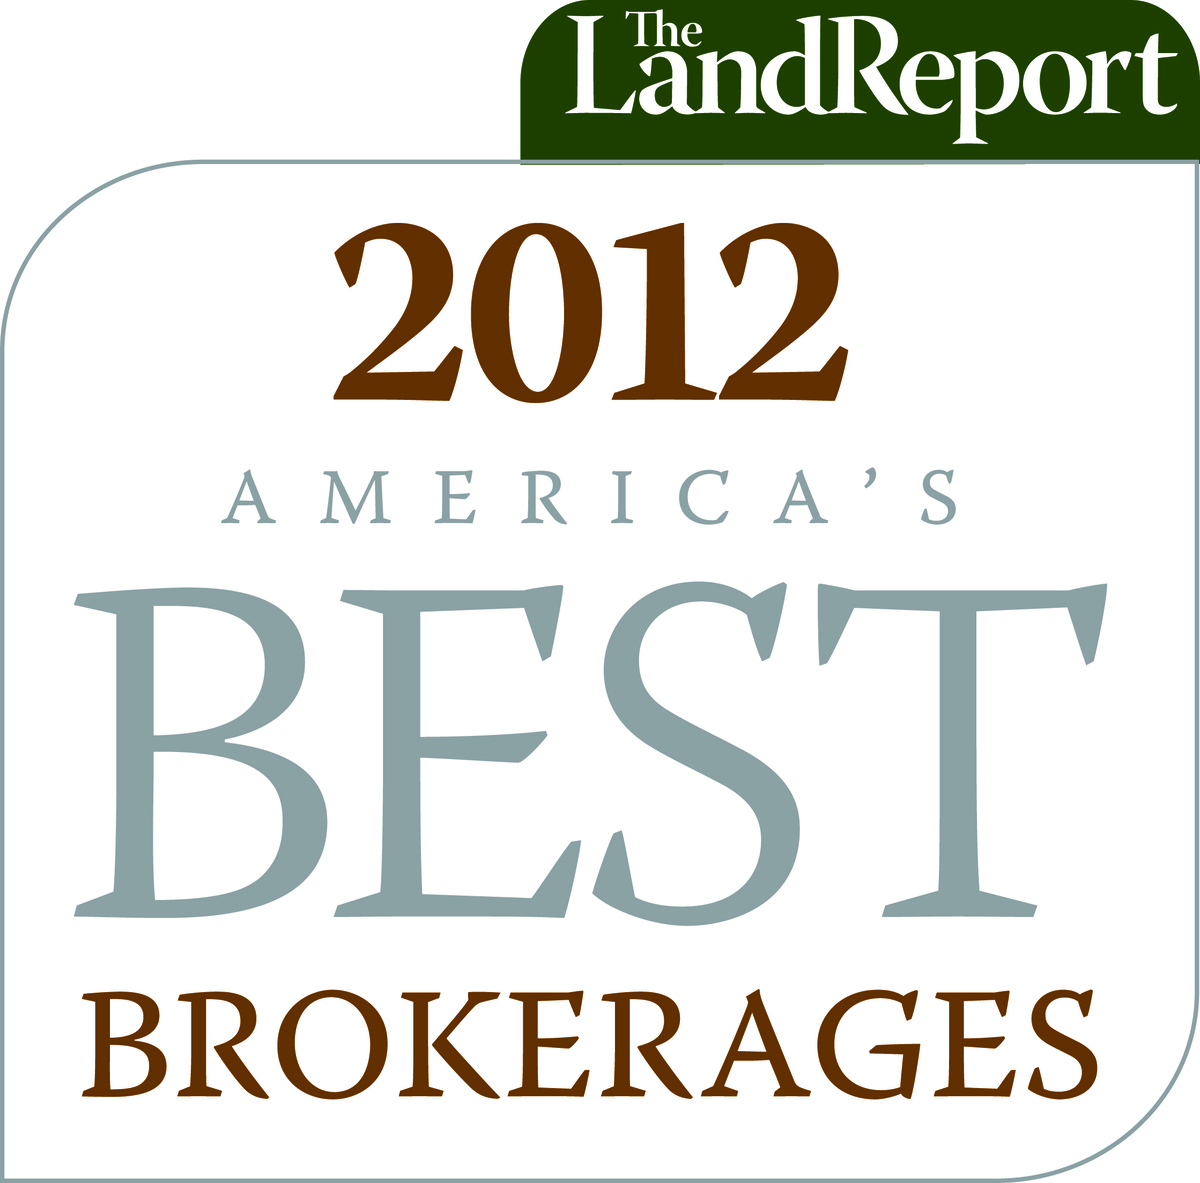 Carter Group Real Estate Receives National Recognition - article image